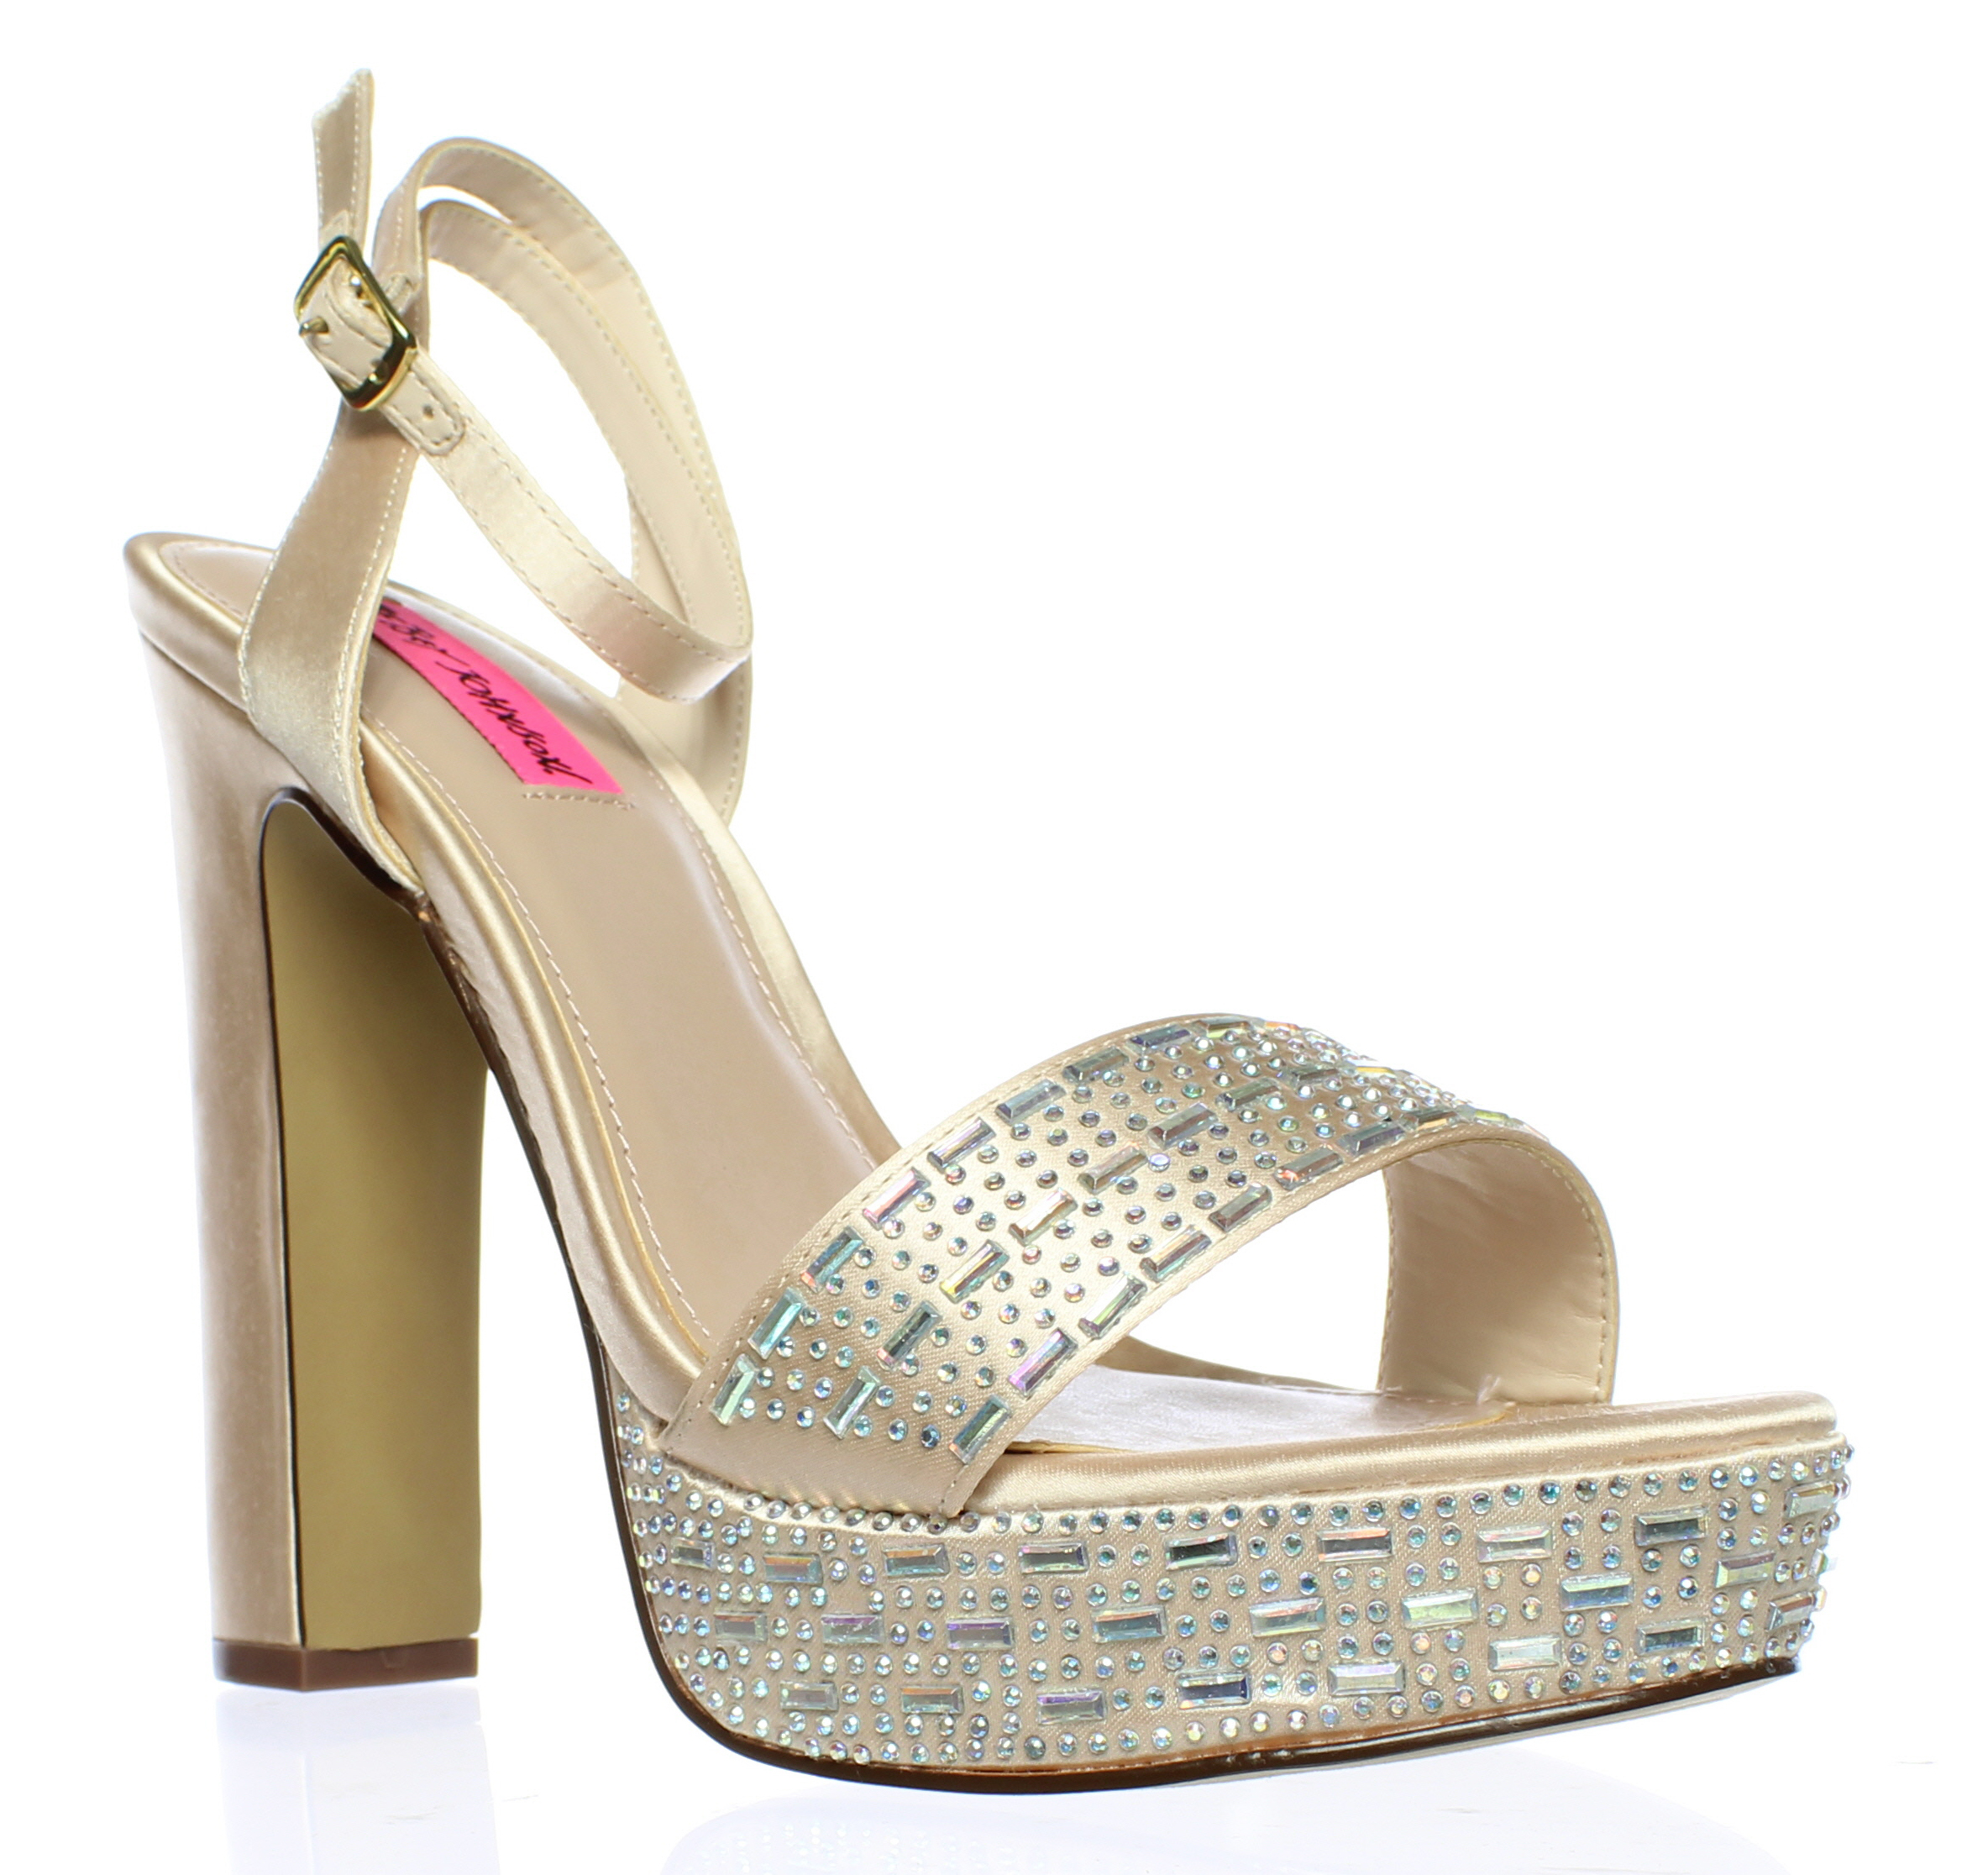 5d5577ebbd5 Betsey Johnson Womens Alliie Champagne Ankle Strap Heels Size 8 ...